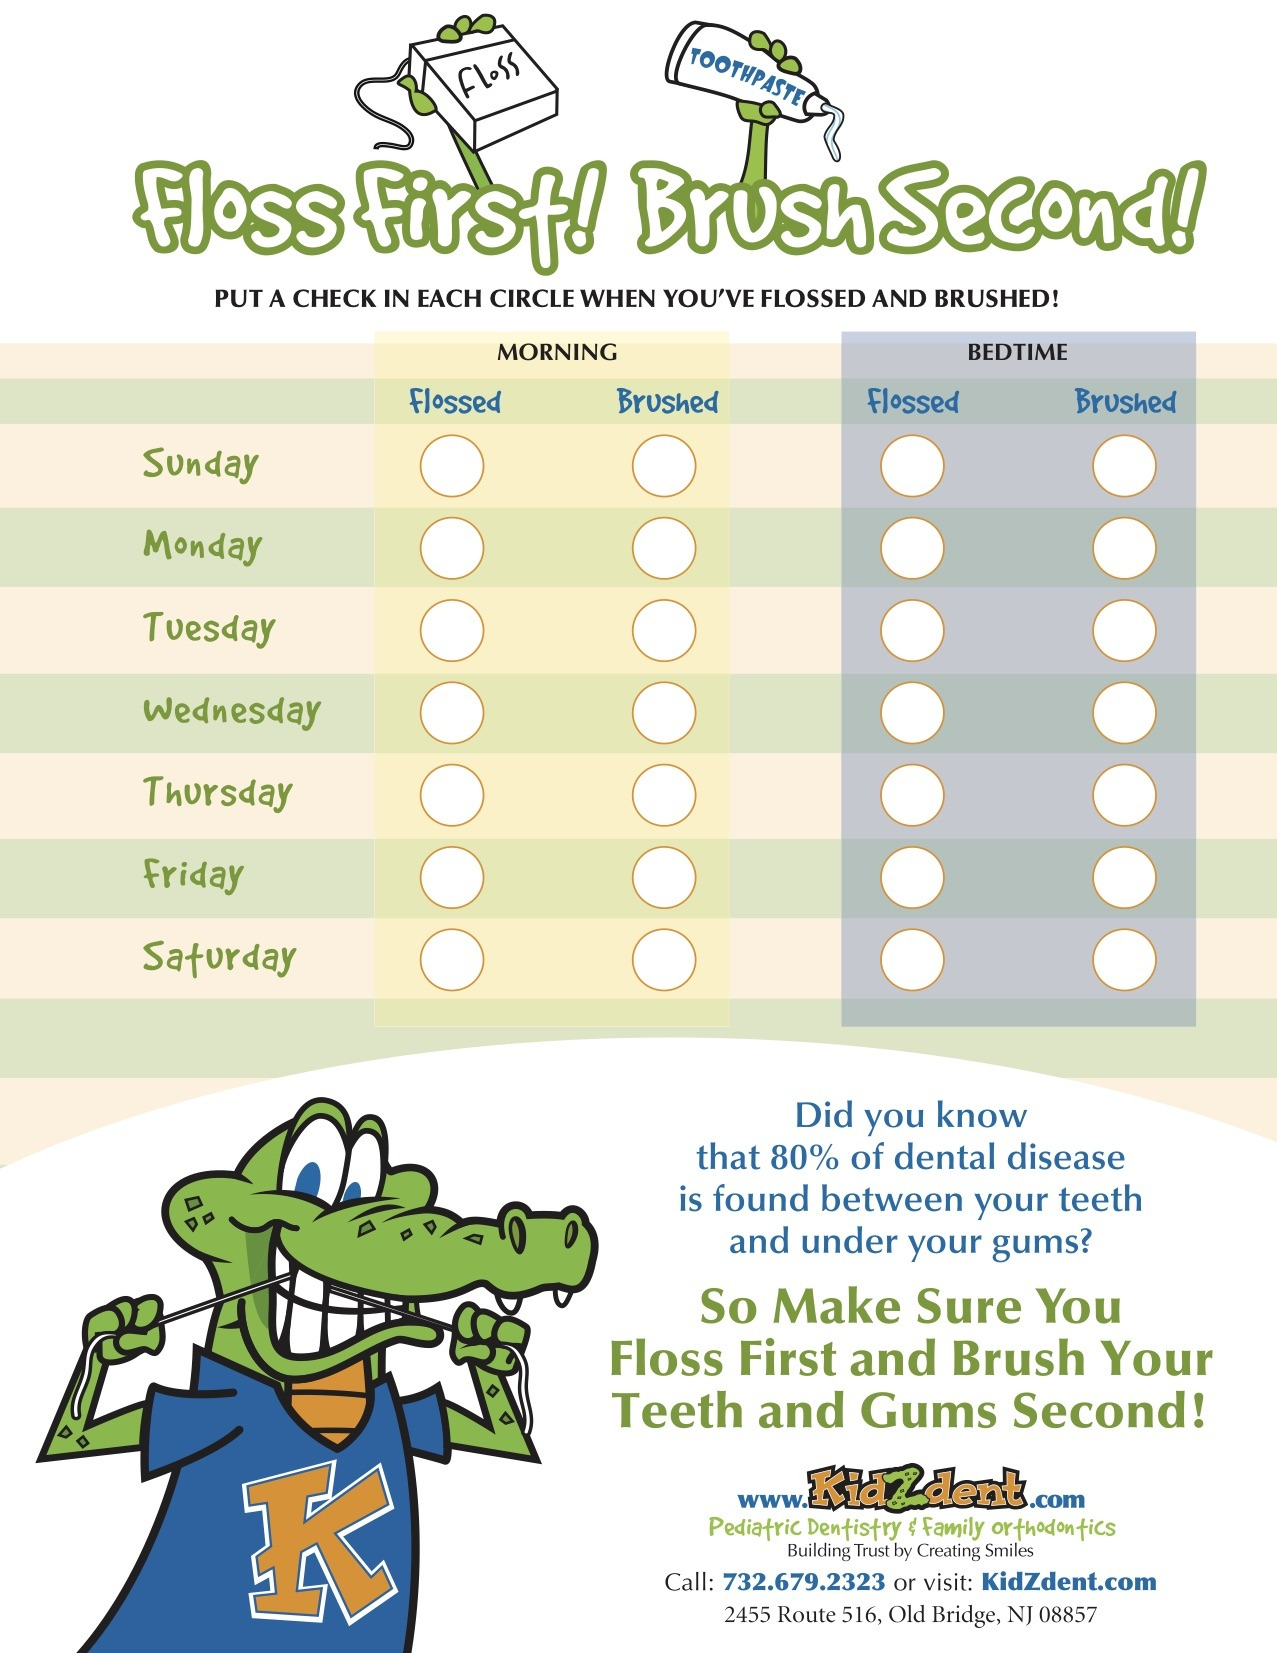 KidZdent Flossing and Brushing